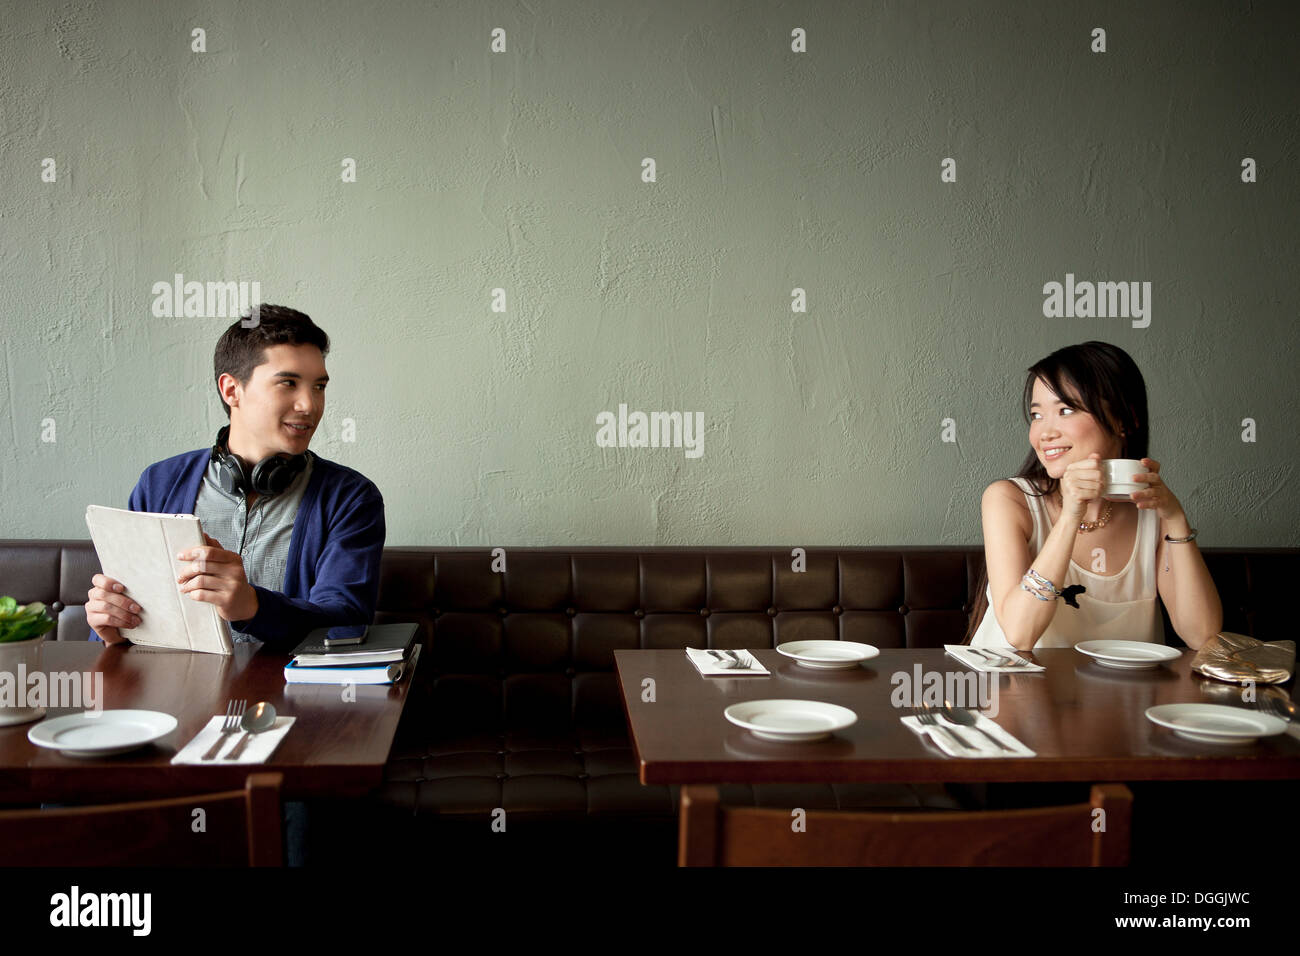 Young man and young woman smiling at each other in restaurant - Stock Image